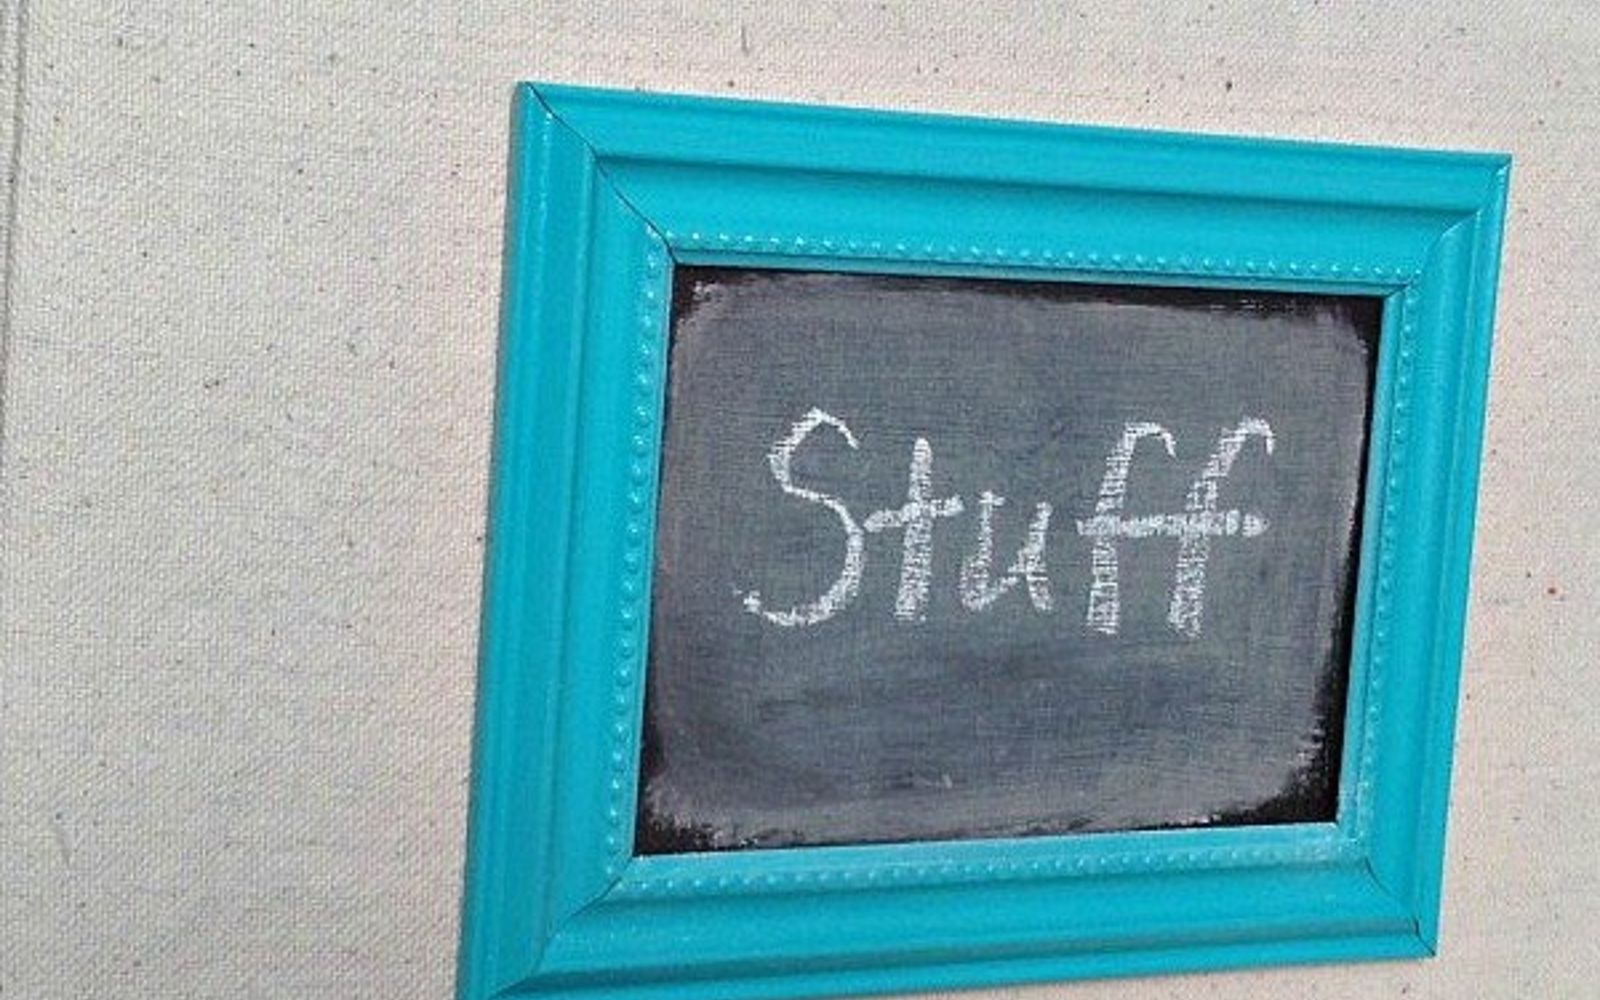 s 15 brilliant ways to reuse your empty cardboard boxes, home decor, repurposing upcycling, Attach Frames for Instant Organization